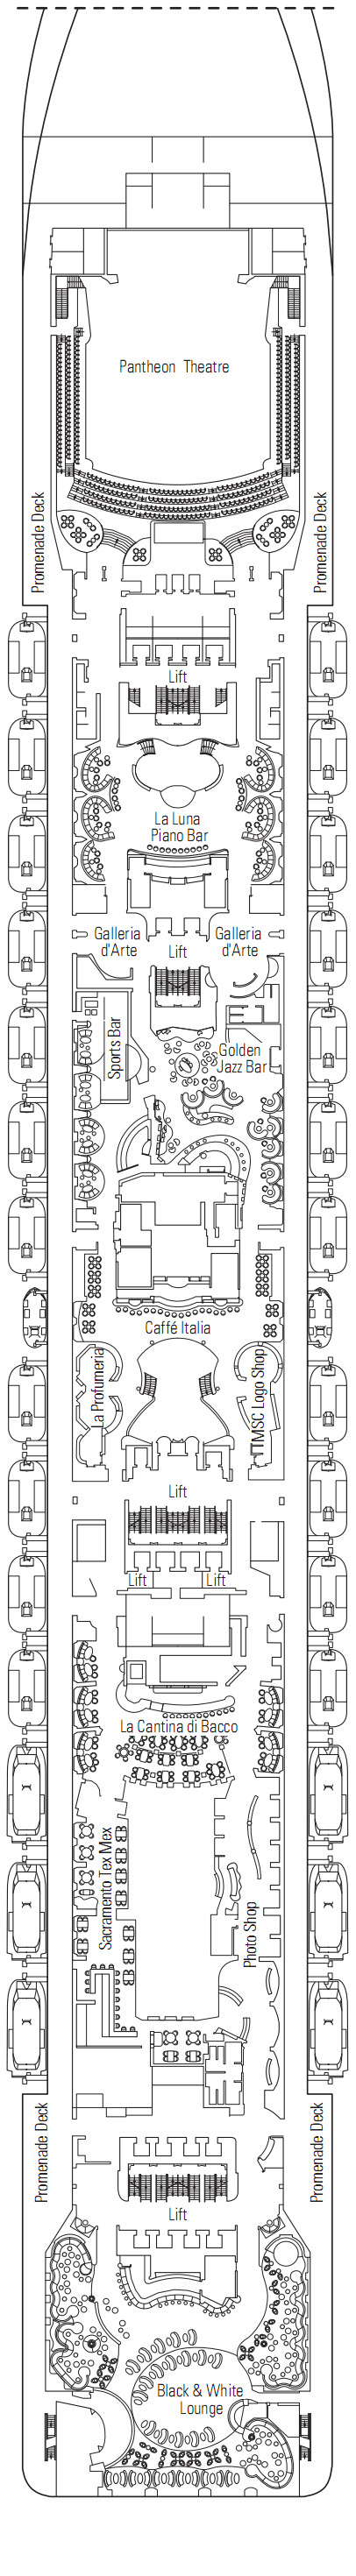 MSC Preziosa Apollo Deck 7 layout